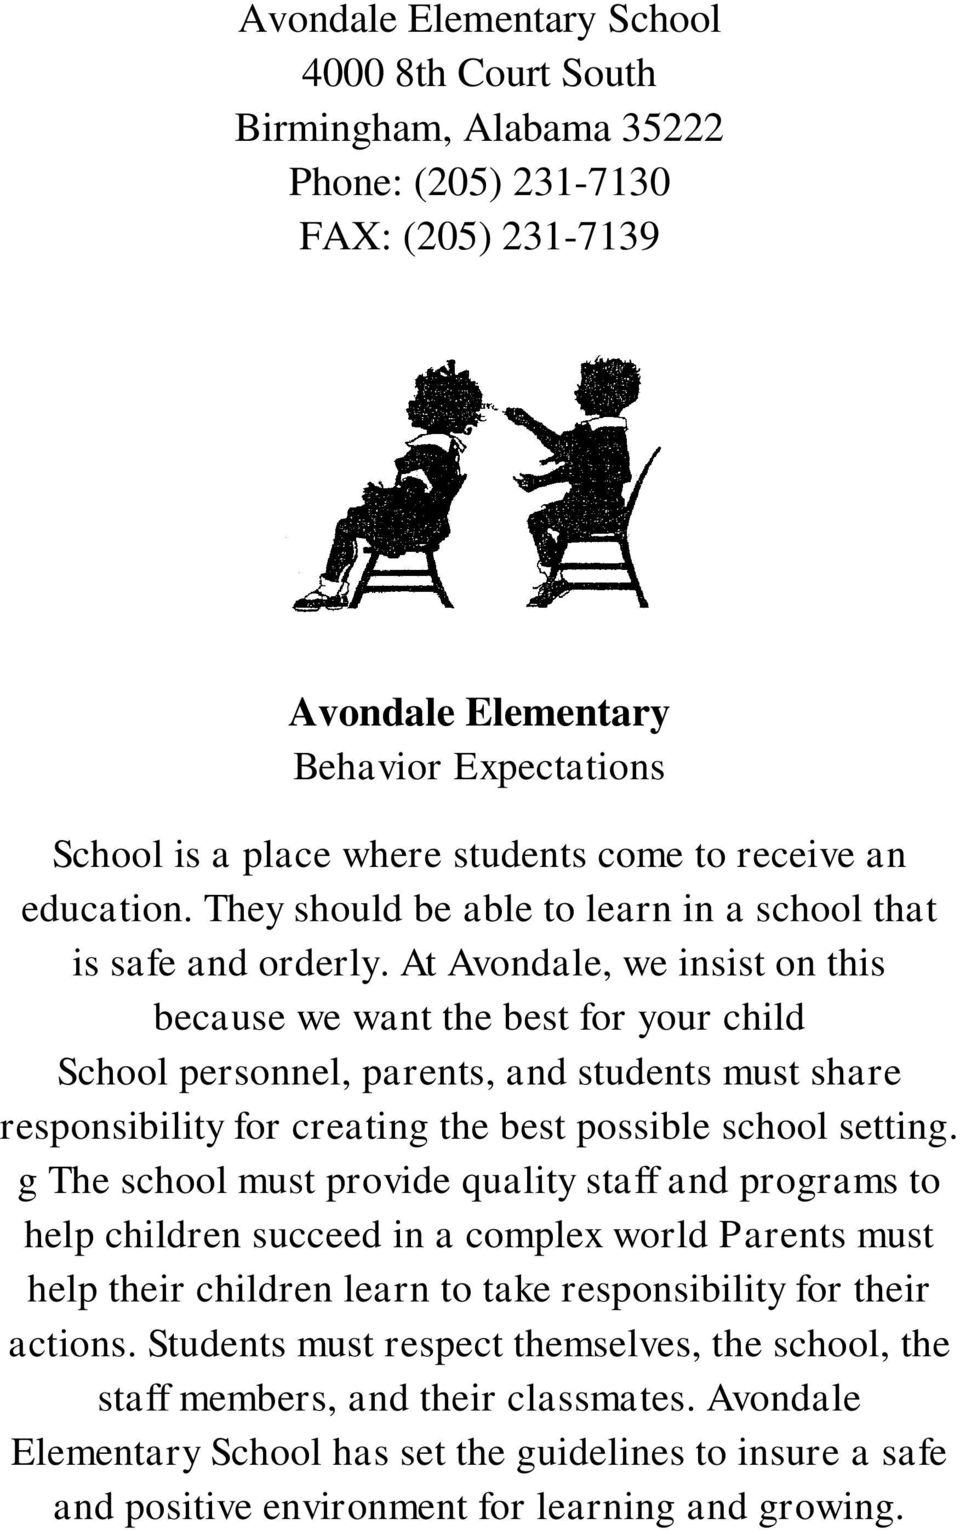 At Avondale, we insist on this because we want the best for your child School personnel, parents, and students must share responsibility for creating the best possible school setting.